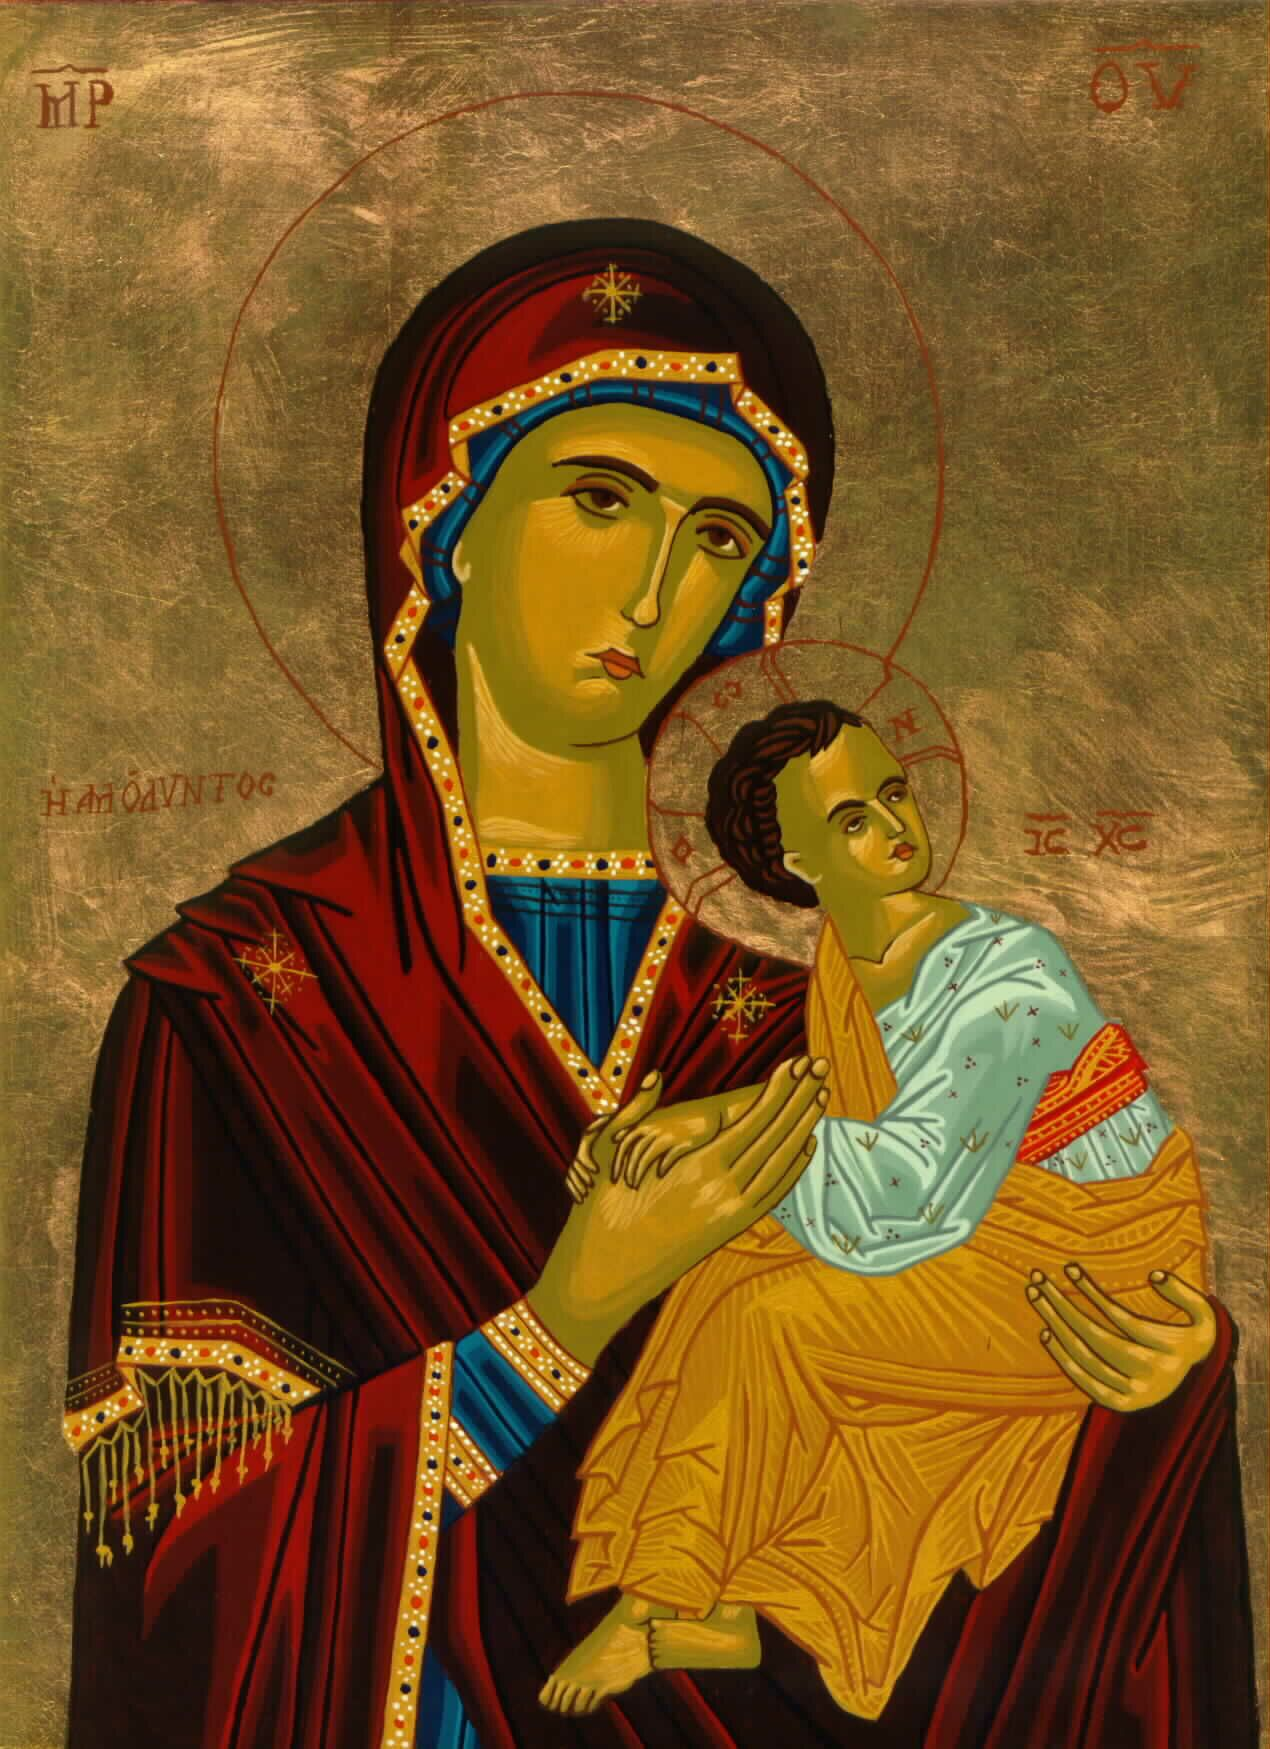 Mary [Theotokos] of the Passion Icon by Olga Christine